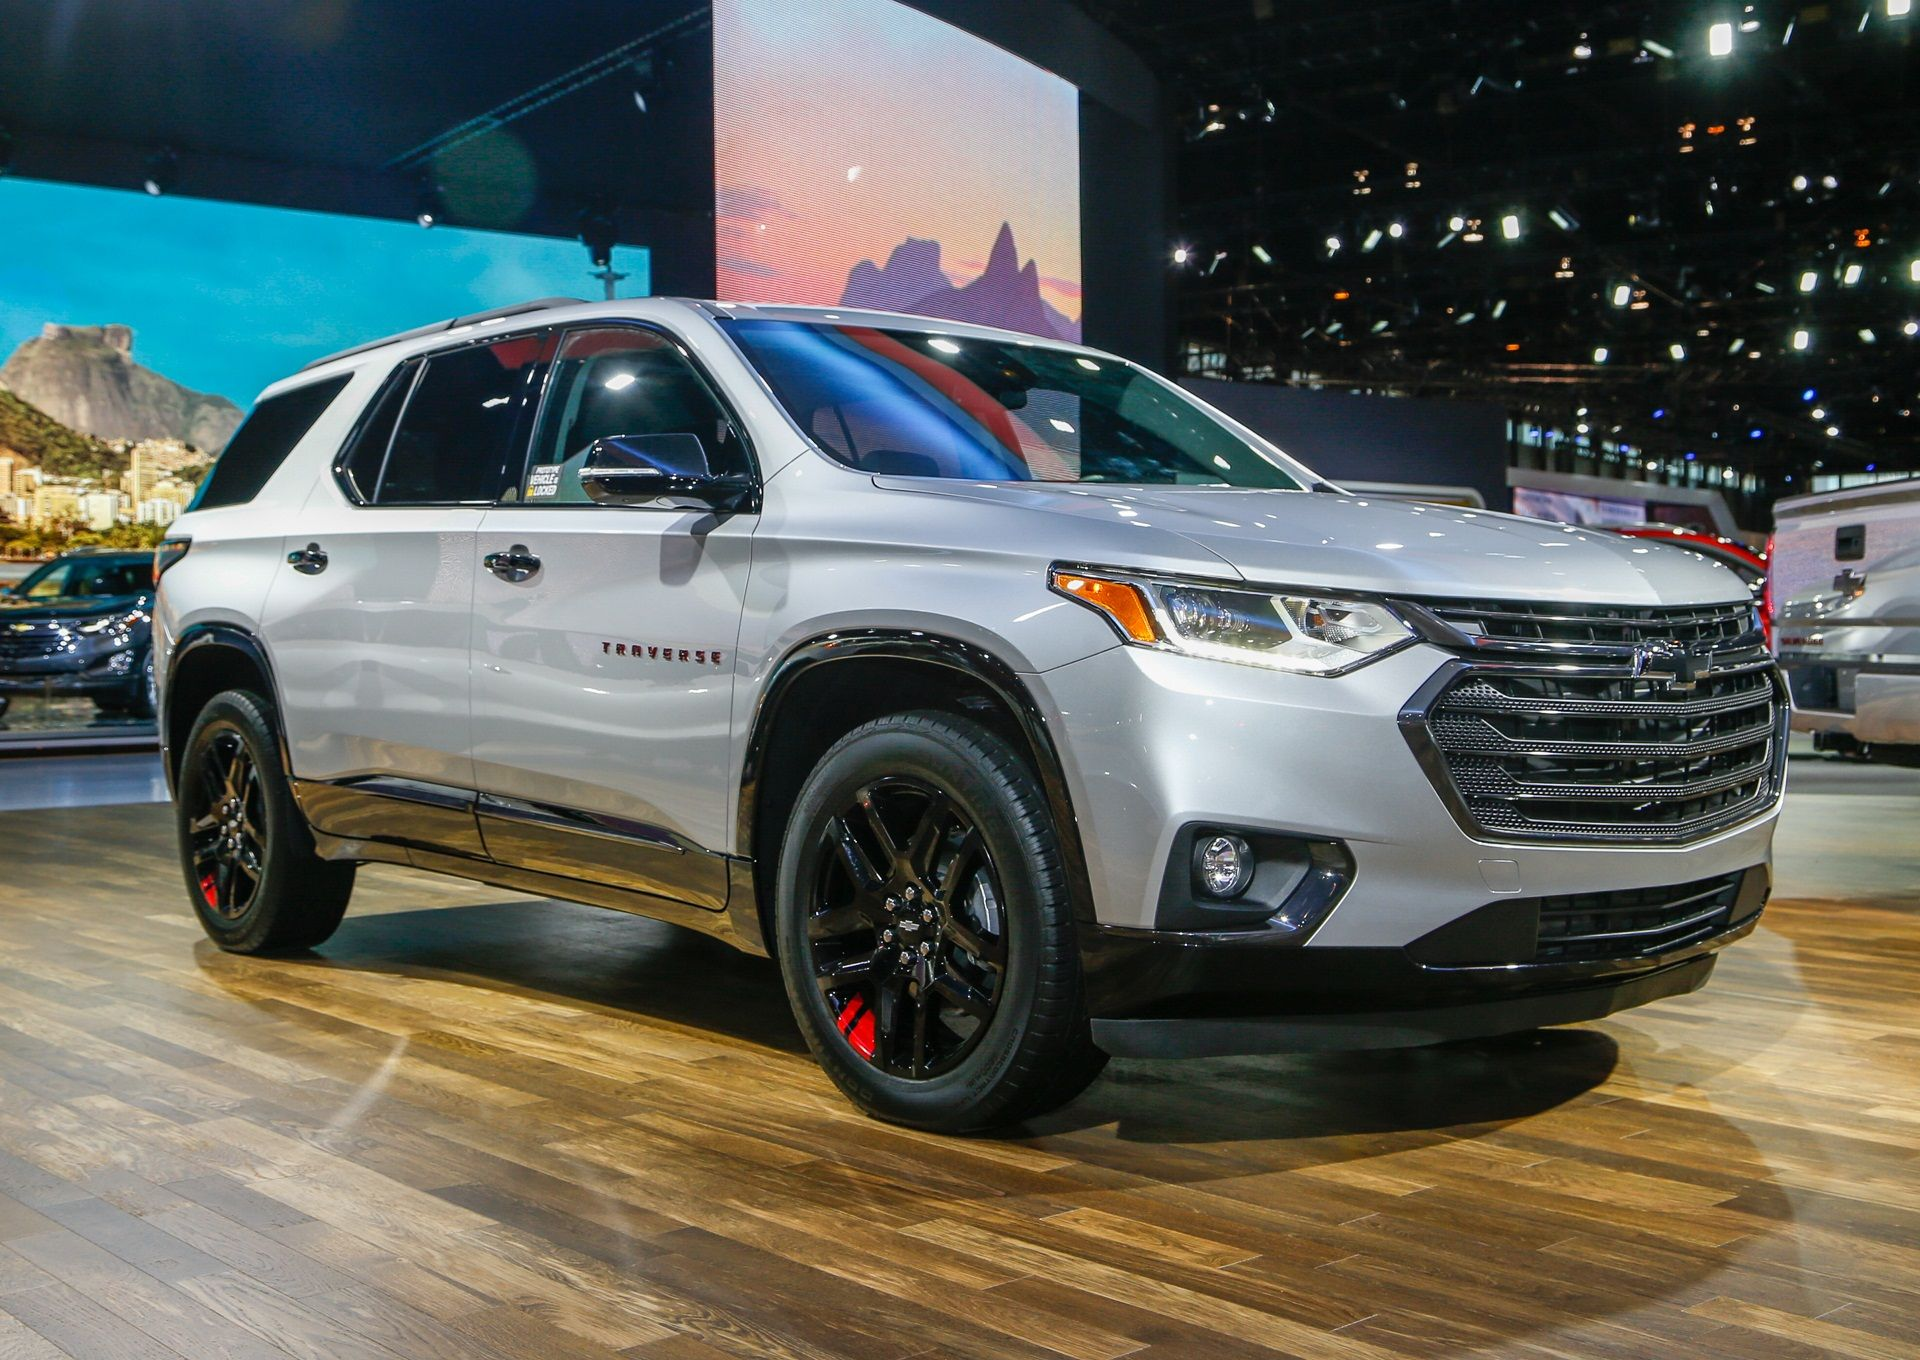 2020 Chevrolet Traverse Release Date And Changes 2019 2020 Find Design 2018 Chevy Traverse Release Date Chevrolet Traverse Chevrolet Best Compact Suv